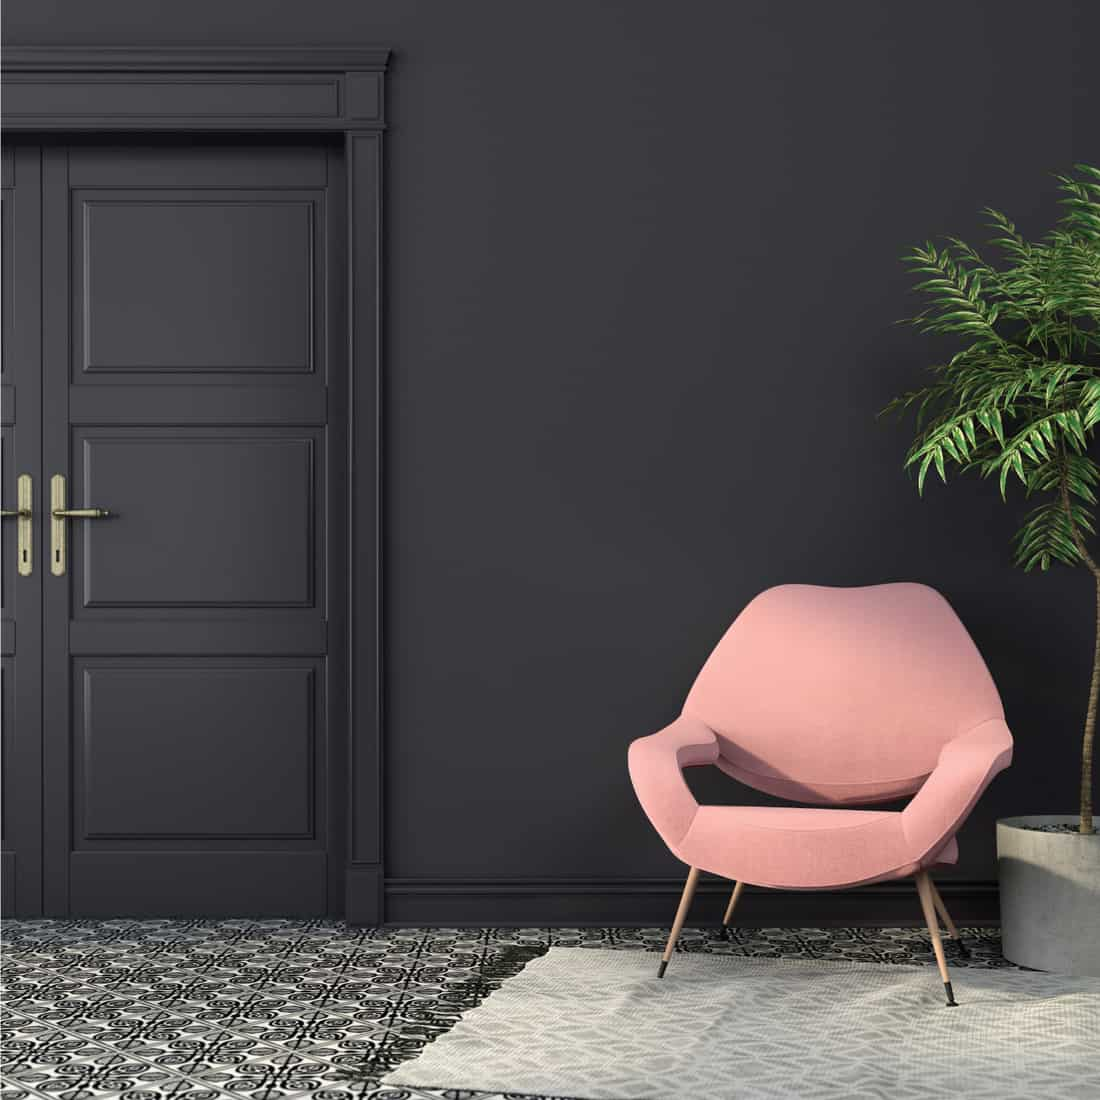 pink armchair inside a room with black or deep charcoal colored walls. black and white carpets